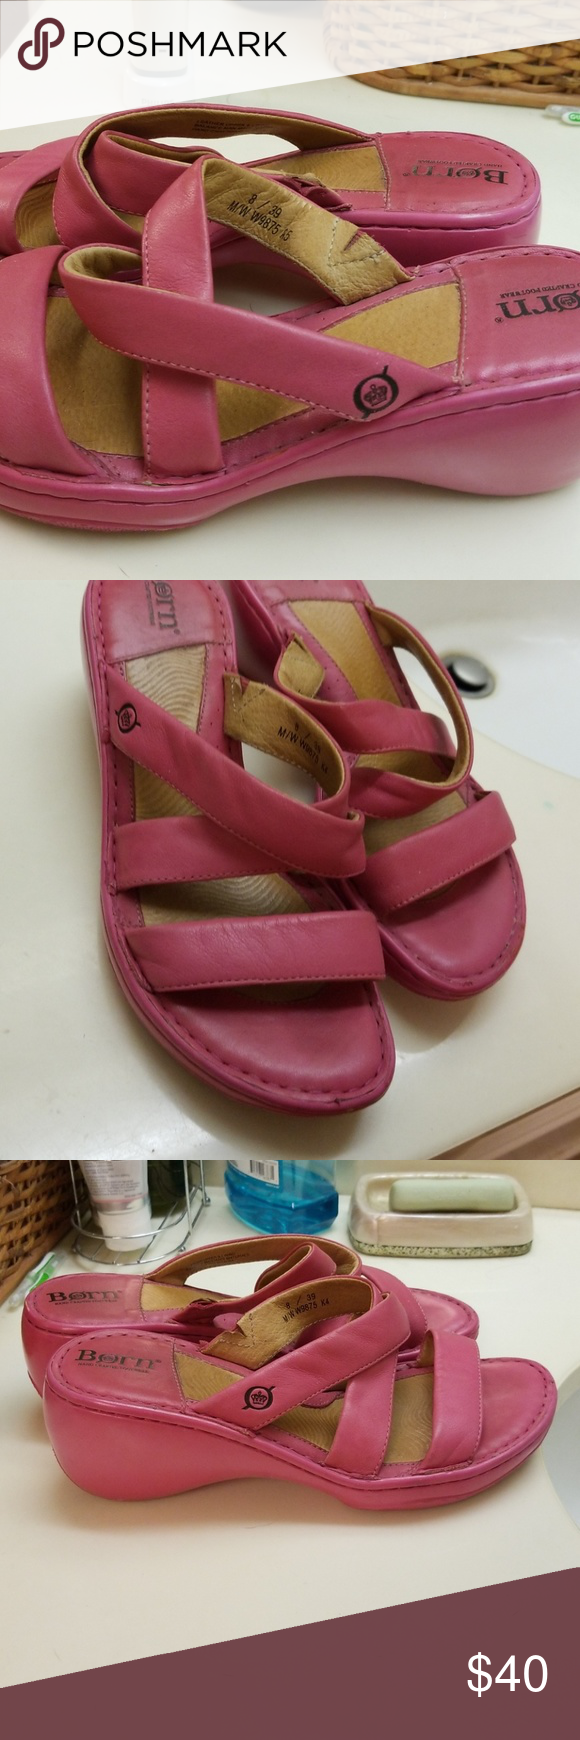 fc3f32ad0 Pink bjorn wedge sandal size 8 Very cute leather sandals dark pink Bjorn  Borg Shoes Sandals